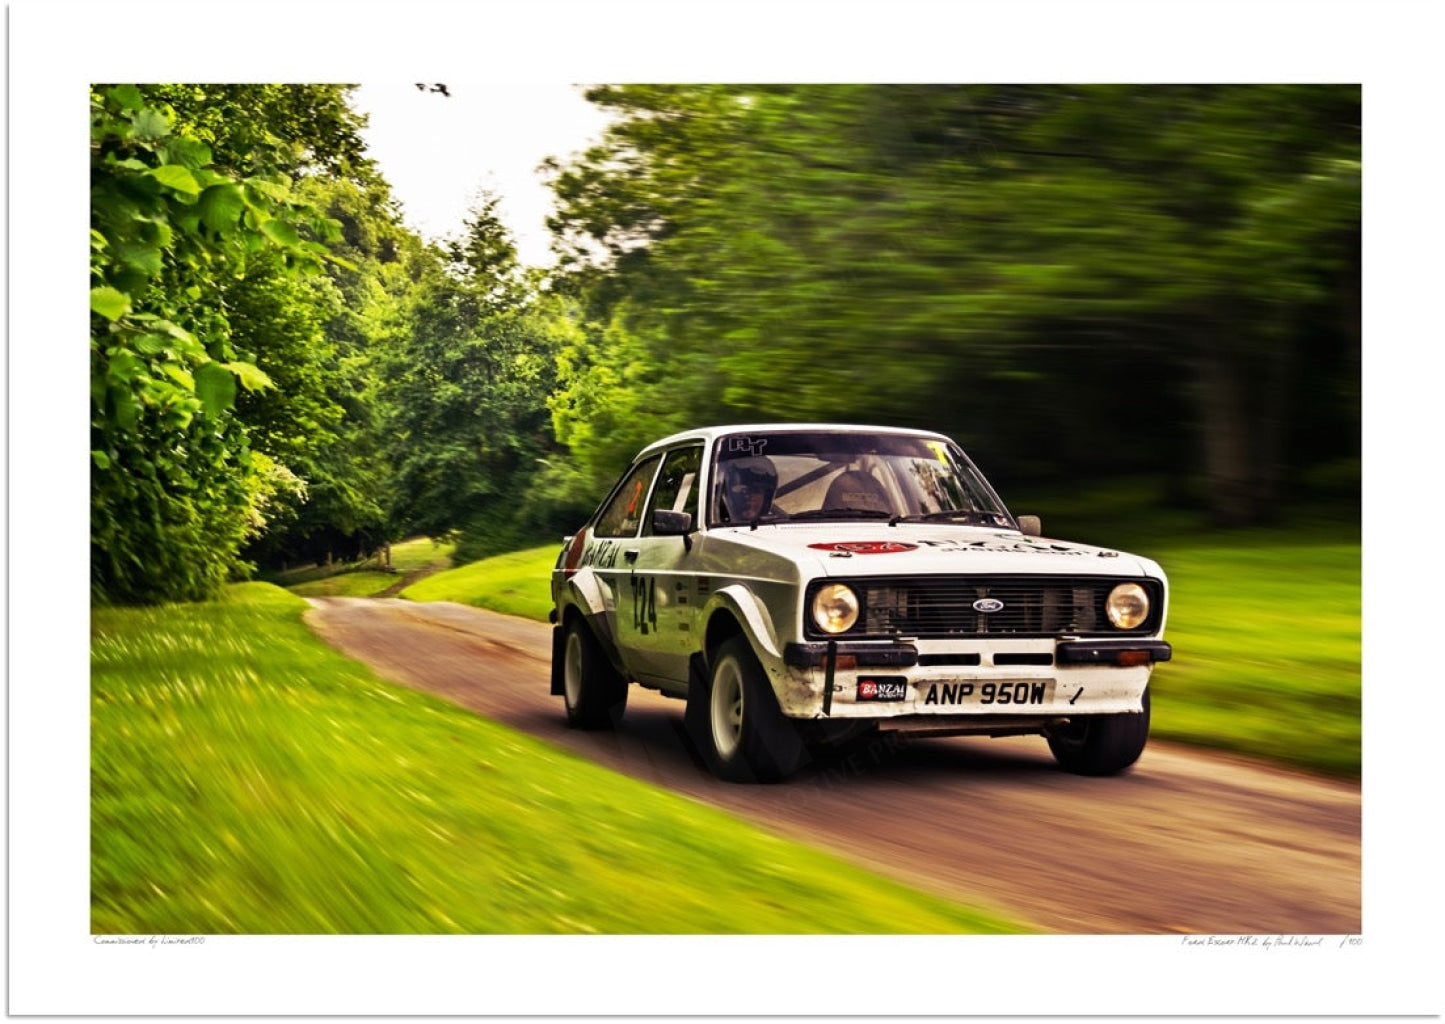 Ford Escort Mk2 1980 at Prescott Hill Climb